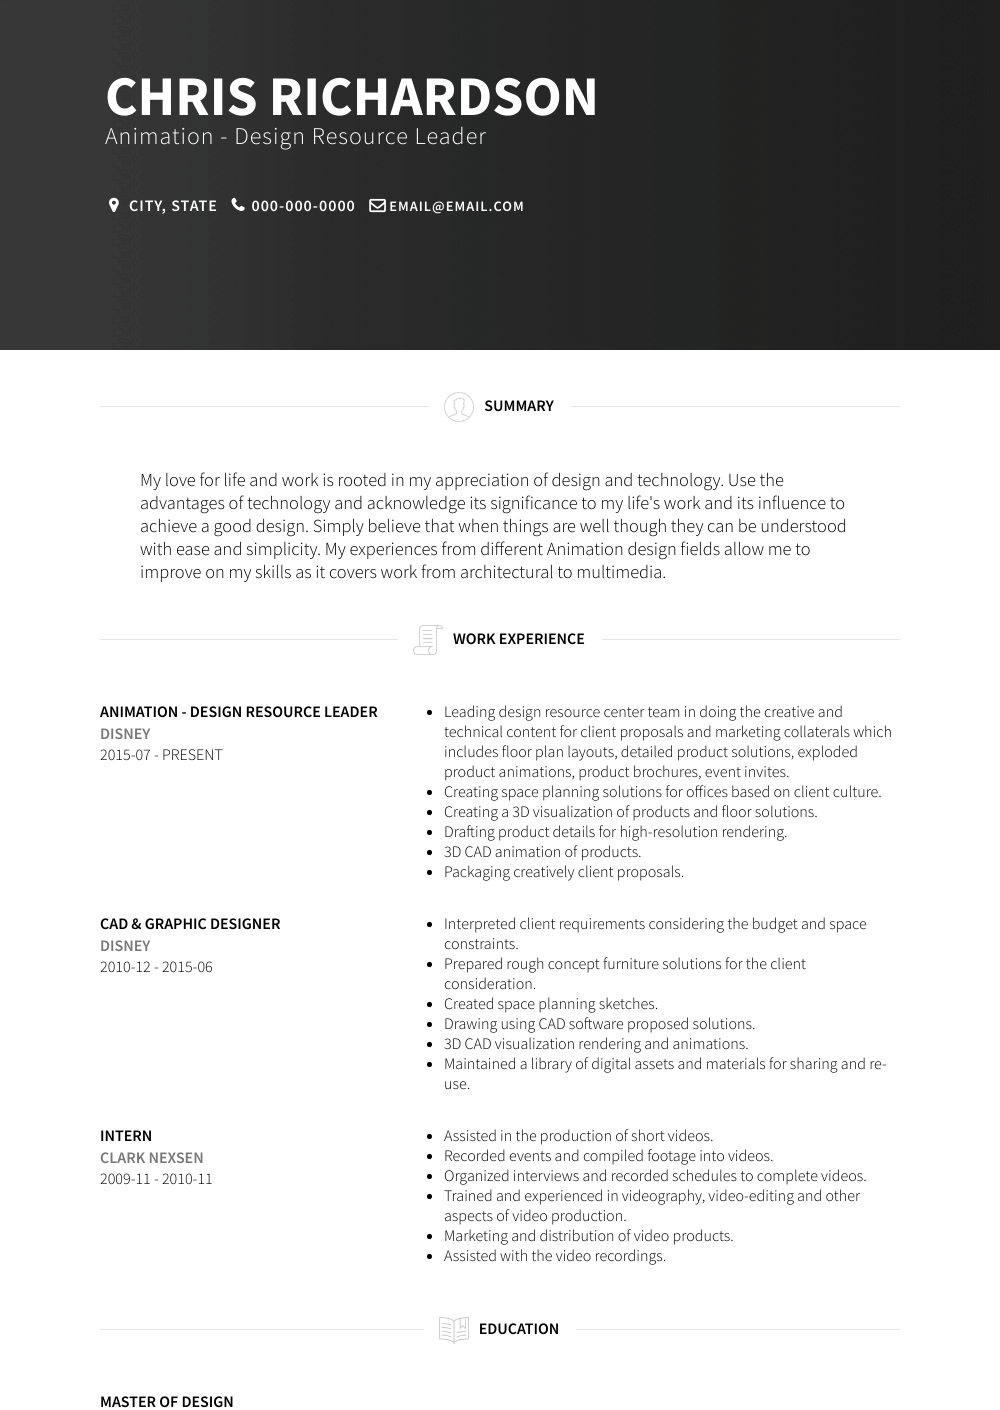 Animation - Design Resource Leader Resume Sample and Template